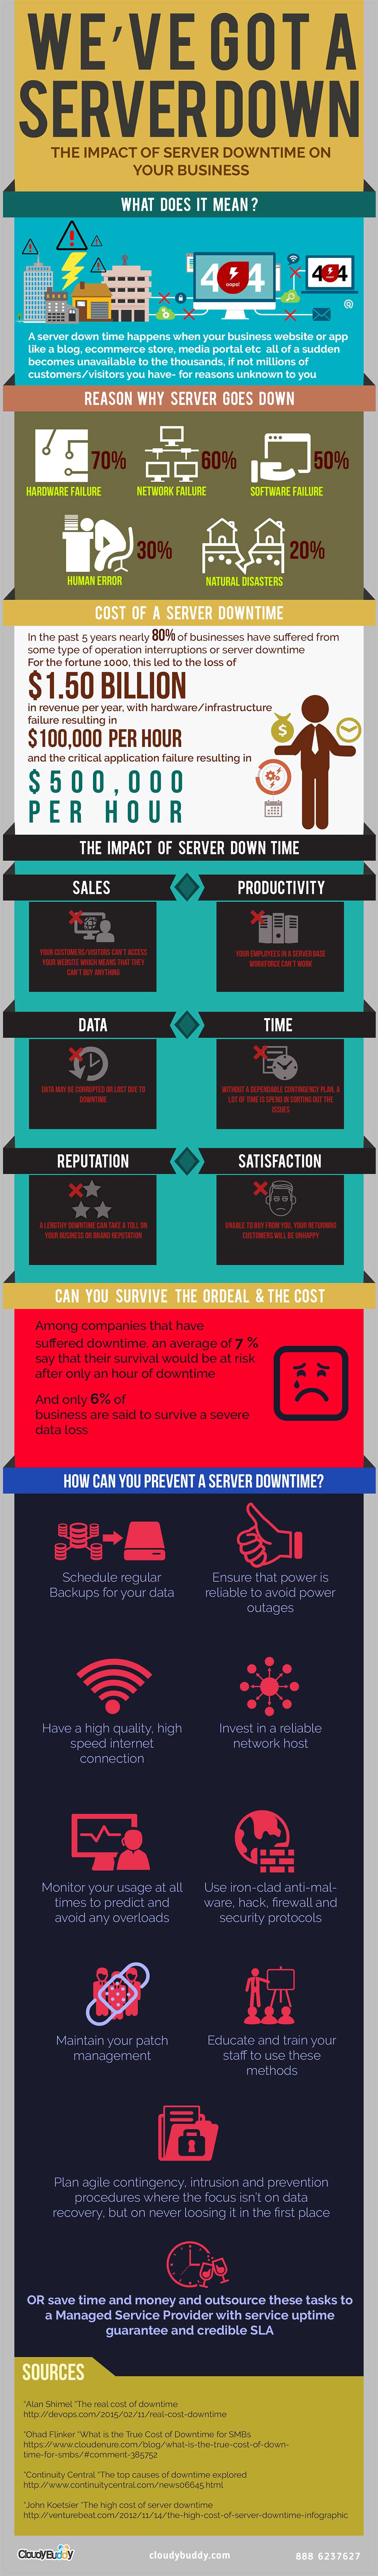 How-Server-Downtime-Can-Affect-Your-Business-Main-Infographics